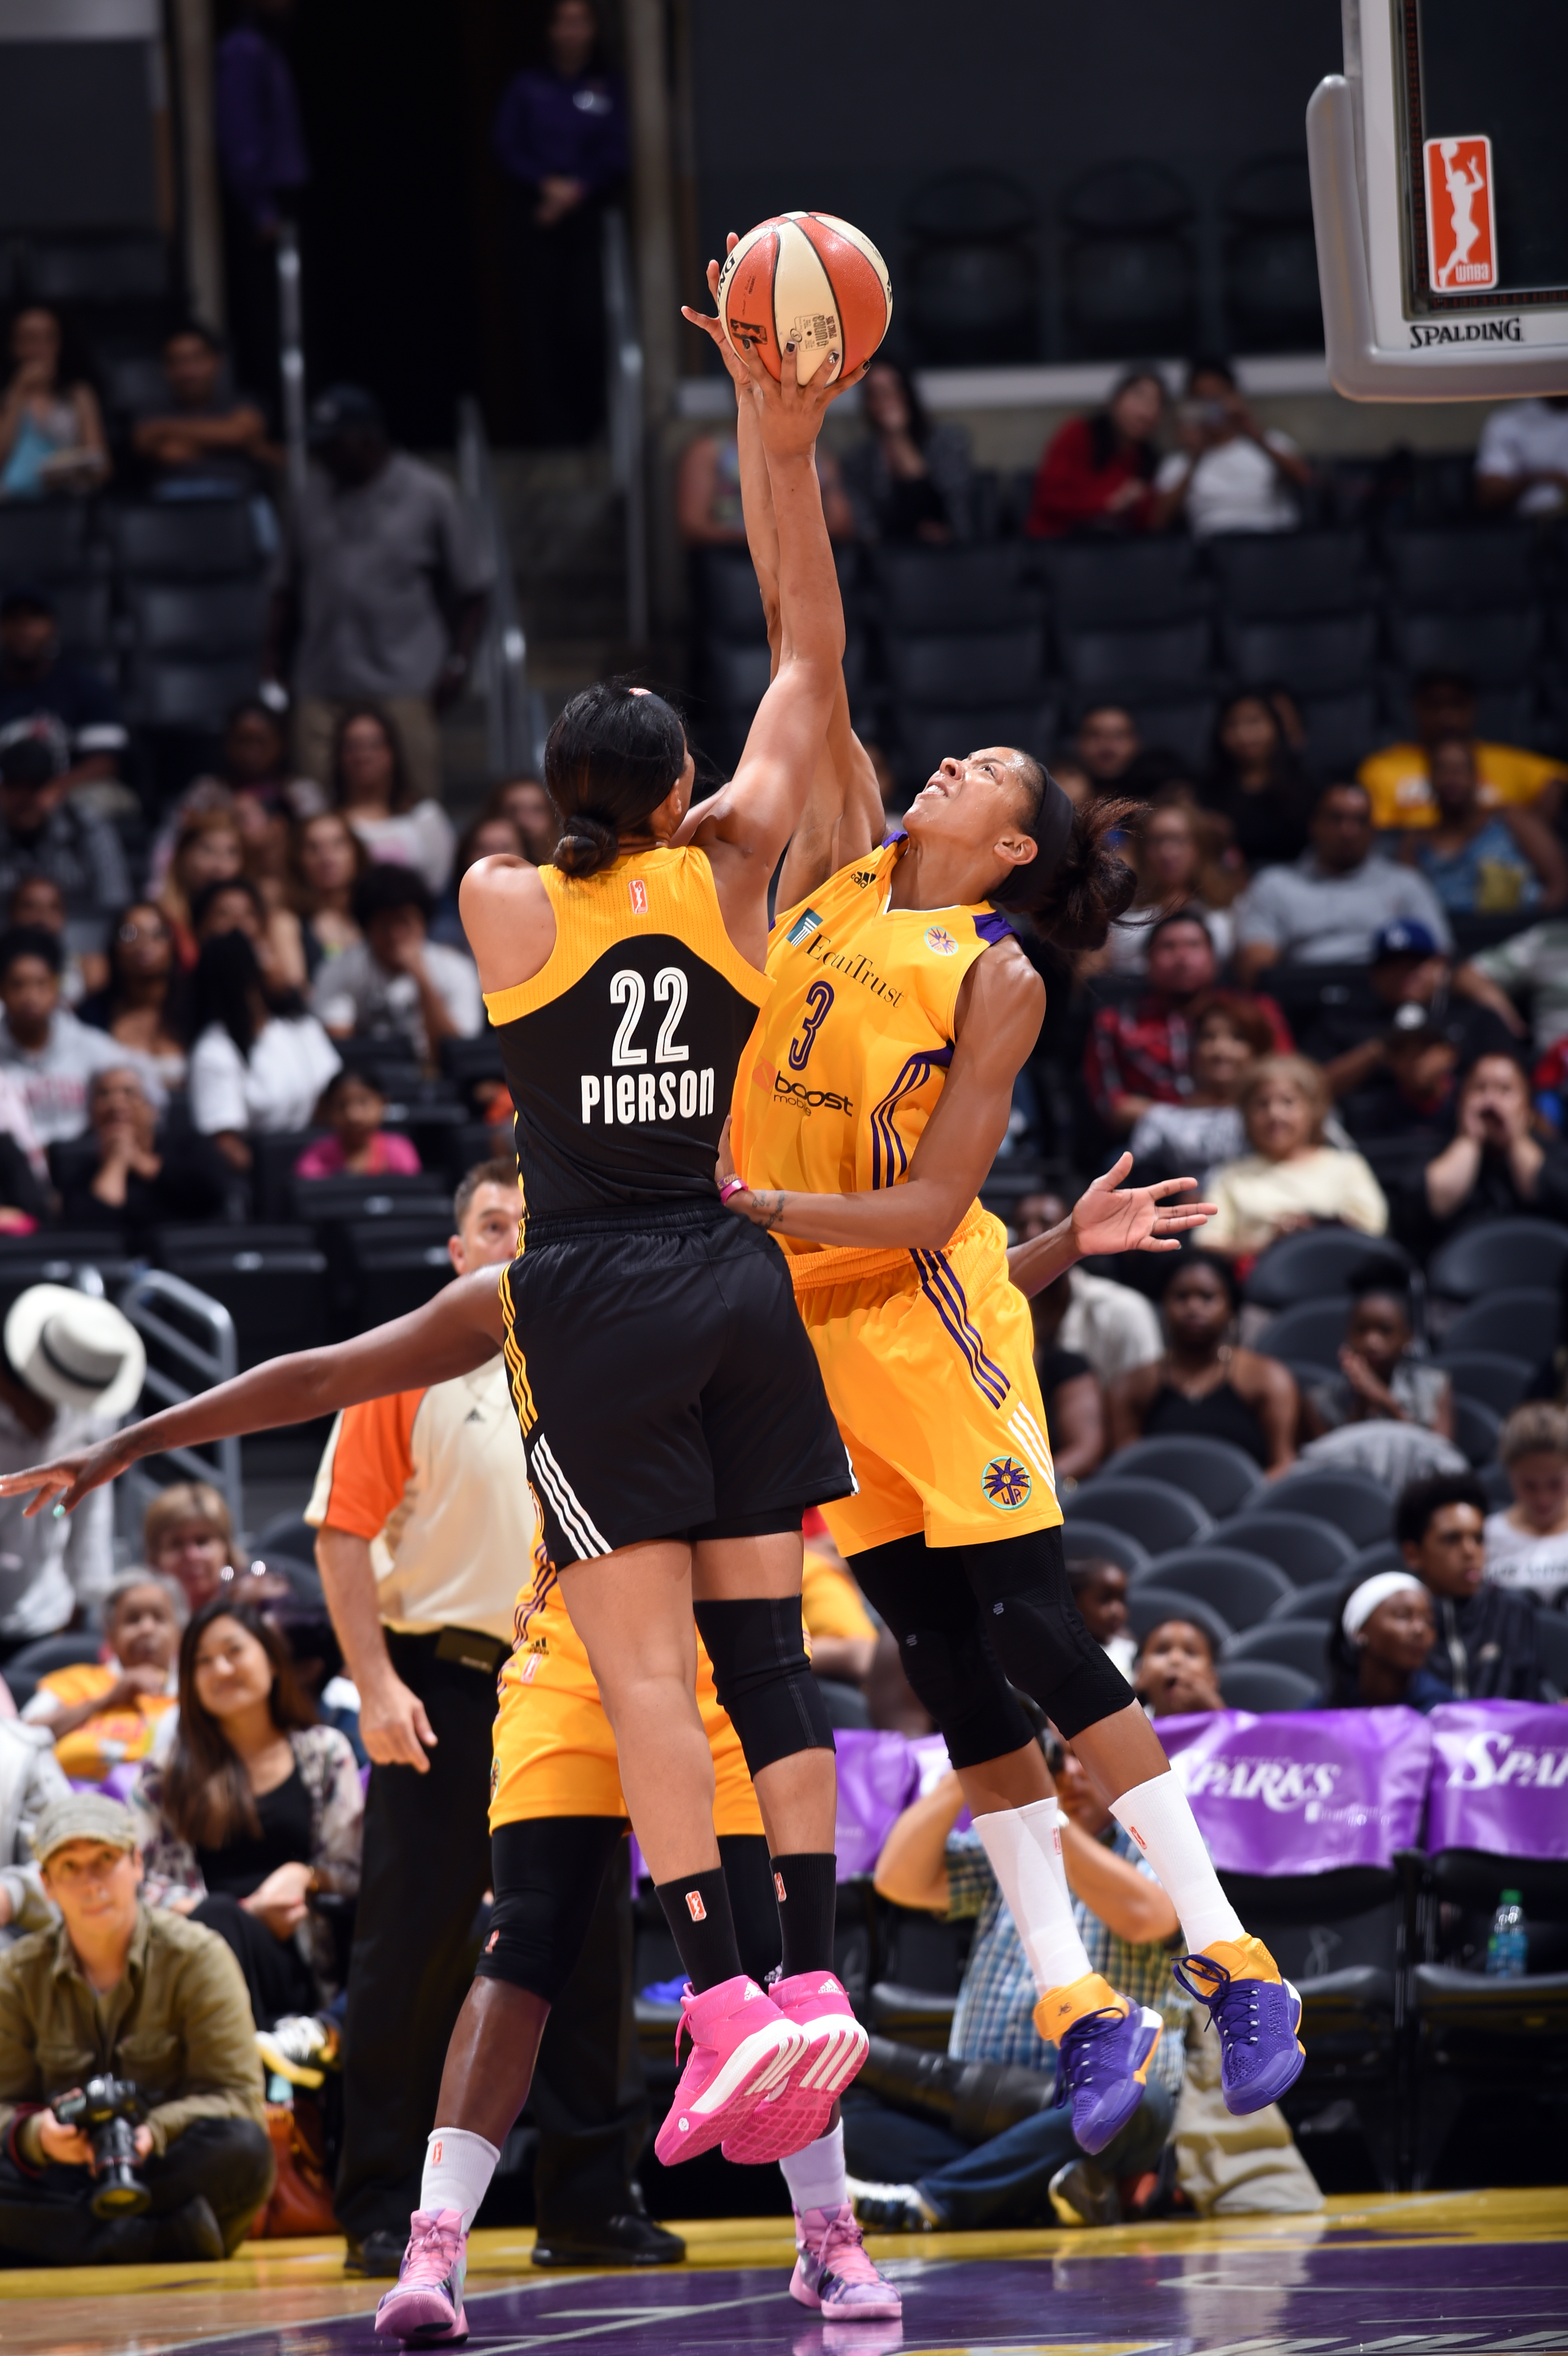 LOS ANGELES, CA - AUGUST 6: Candace Parker #3 of the Los Angeles Sparks attempts to block a shot from Plenette Pierson #22 of the Tulsa Shock  on August 6, 2015 at Staples Center in Los Angeles, California. (Photo by /NBAE via Getty Images)